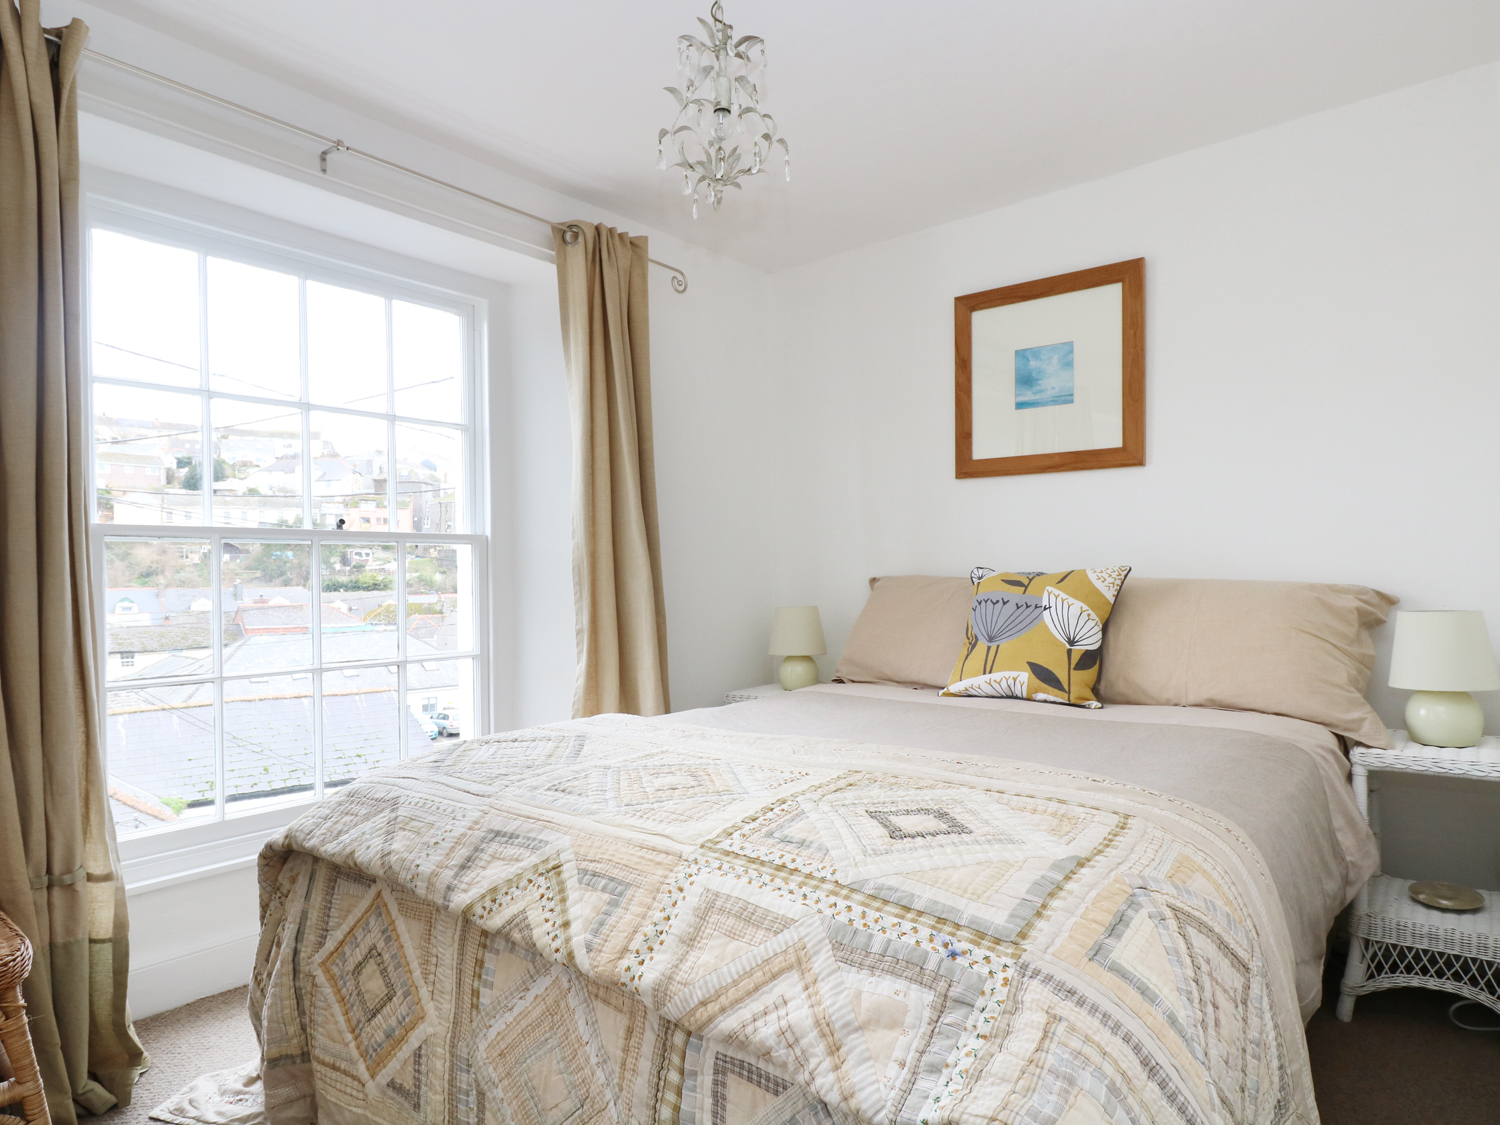 4 elm terrace in mevagissey this welcoming cottage has